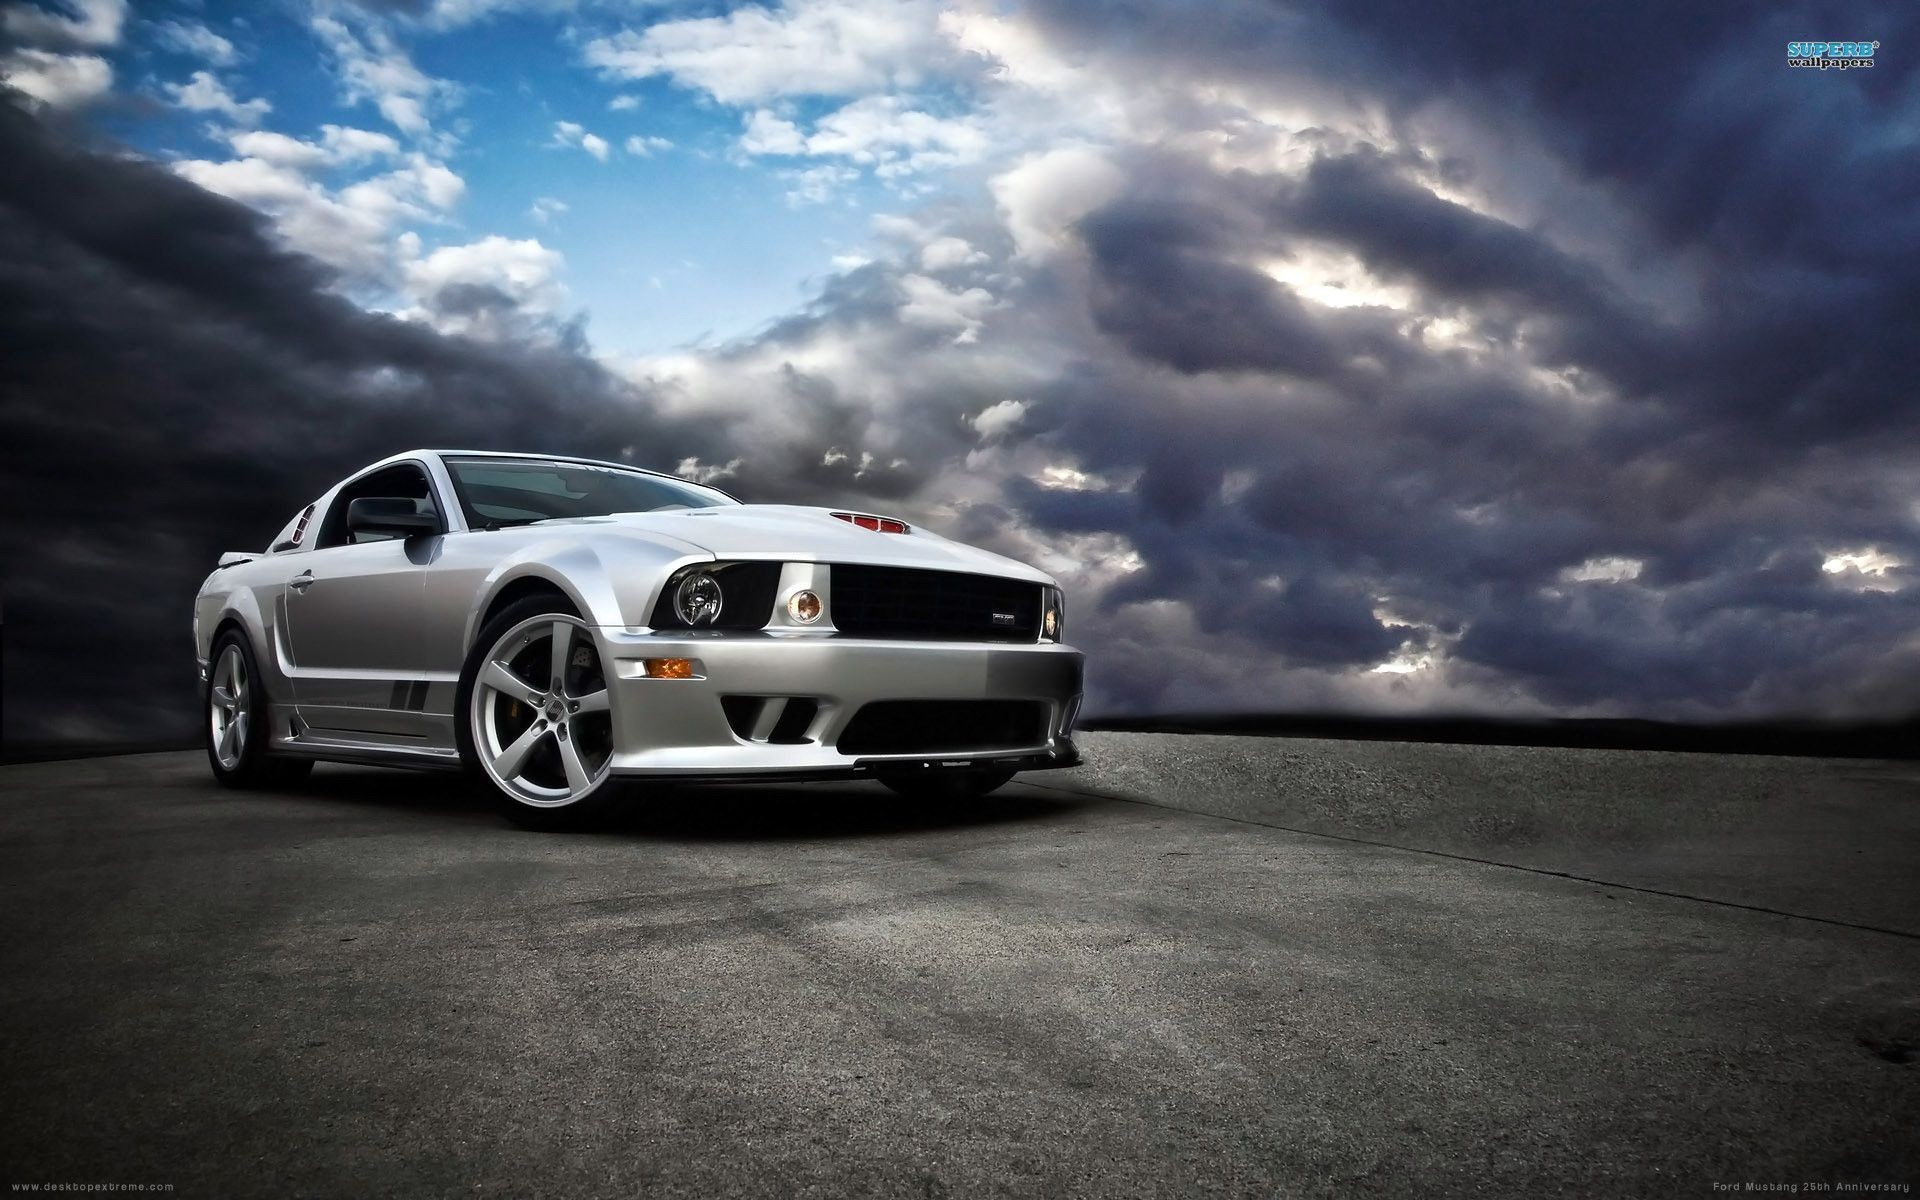 Ford Mustang Wallpapers – Wallpaper Cave